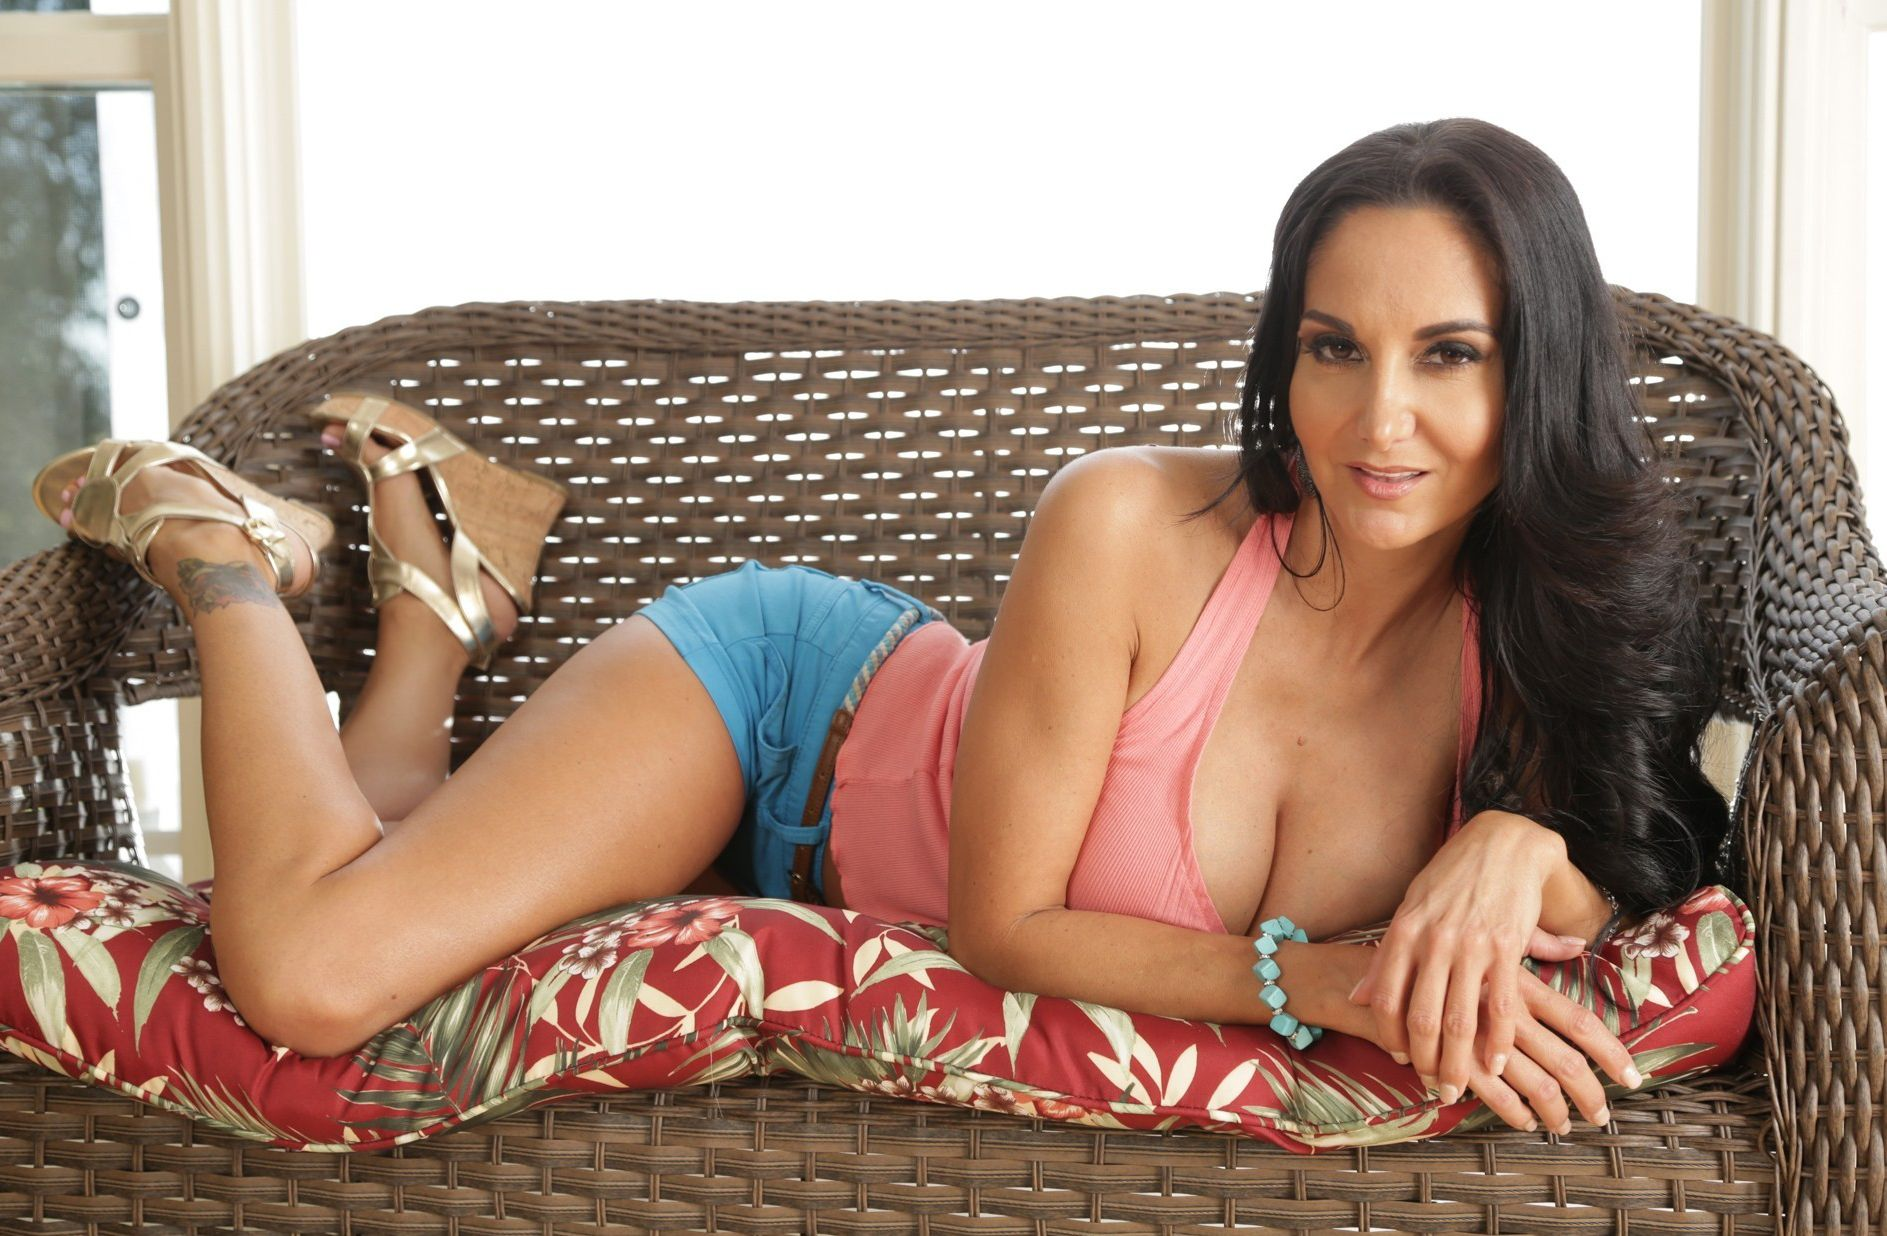 Ava Addam Feet Ava Addams Feet 39 Photos Celebrity